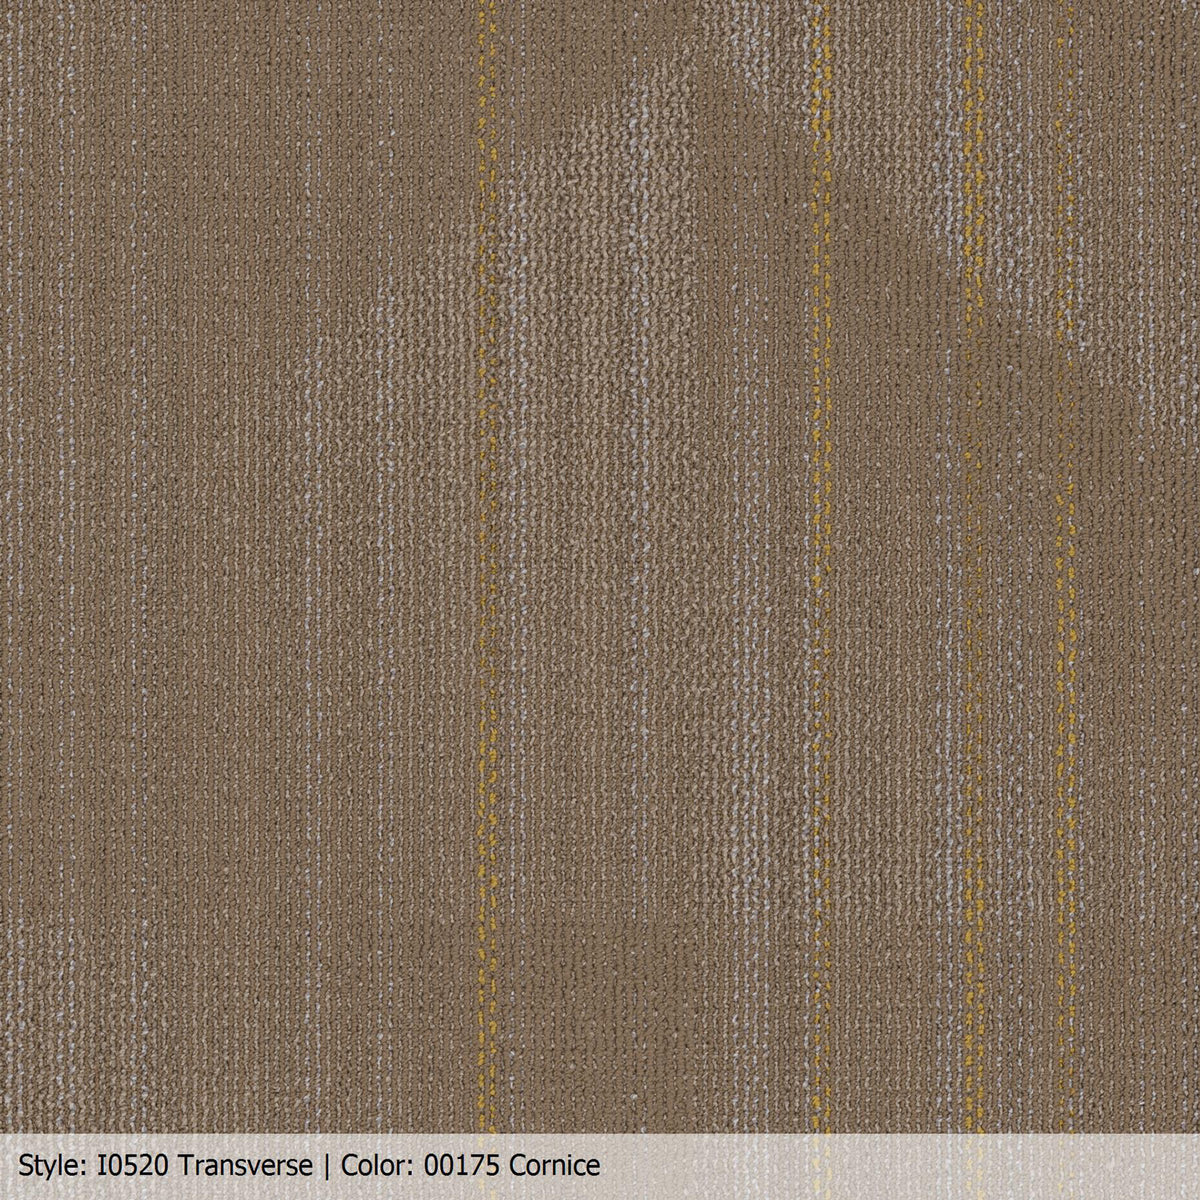 Patcraft - Infrastructure Collection - Transverse Carpet Tile - Cornice